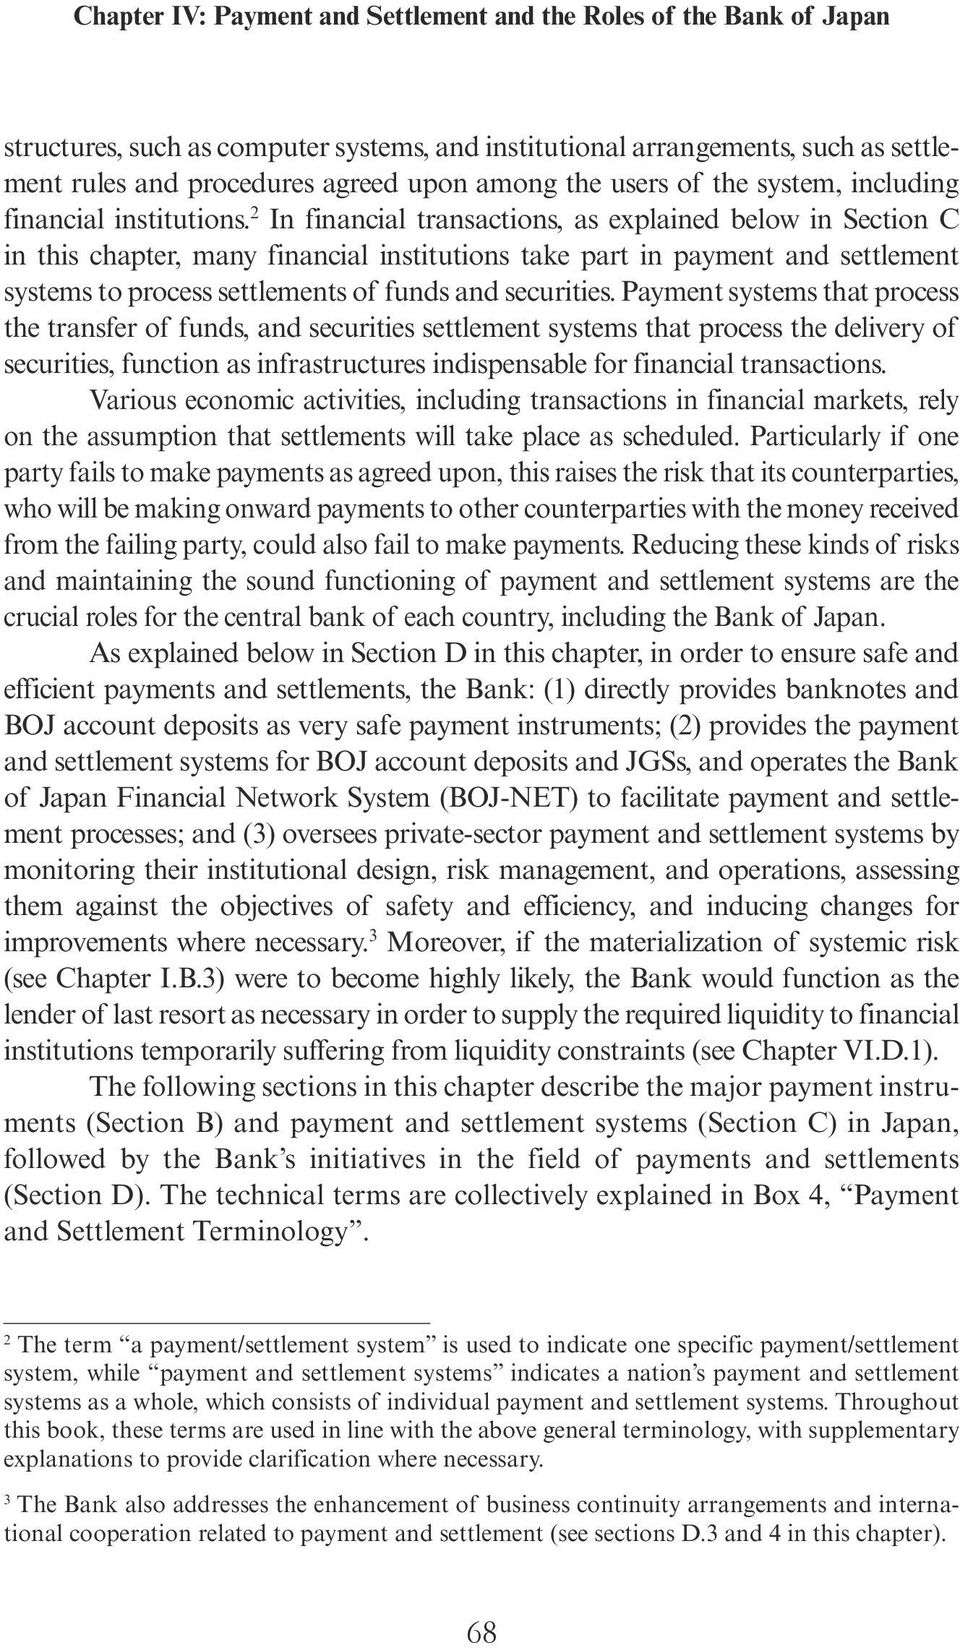 2 In financial transactions, as explained below in Section C in this chapter, many financial institutions take part in payment and settlement systems to process settlements of funds and securities.